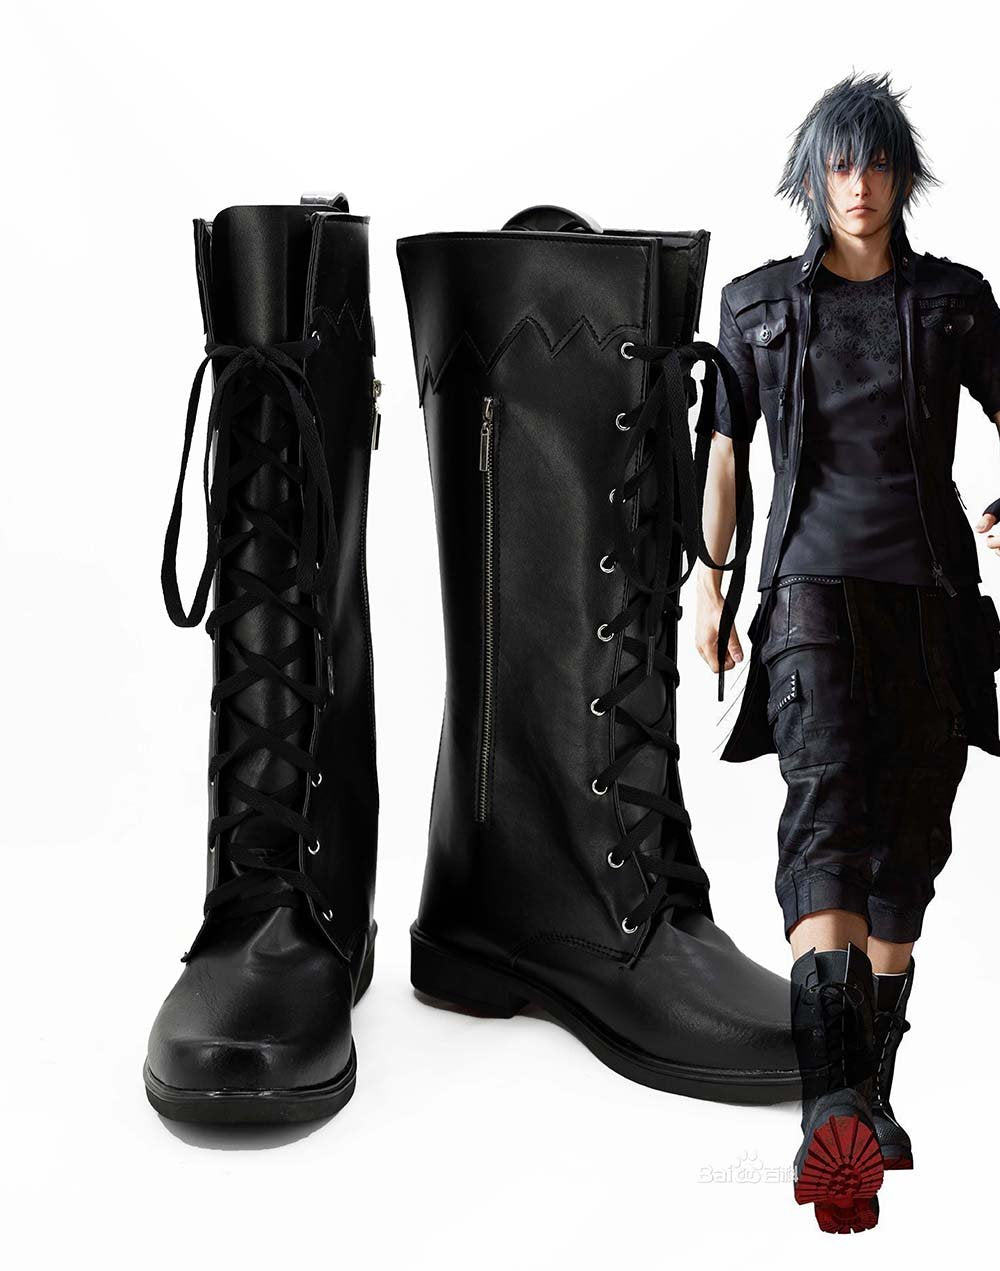 FFXV Final Fantasy XV Noctis Lucis Caelum Cosplay Chaussures